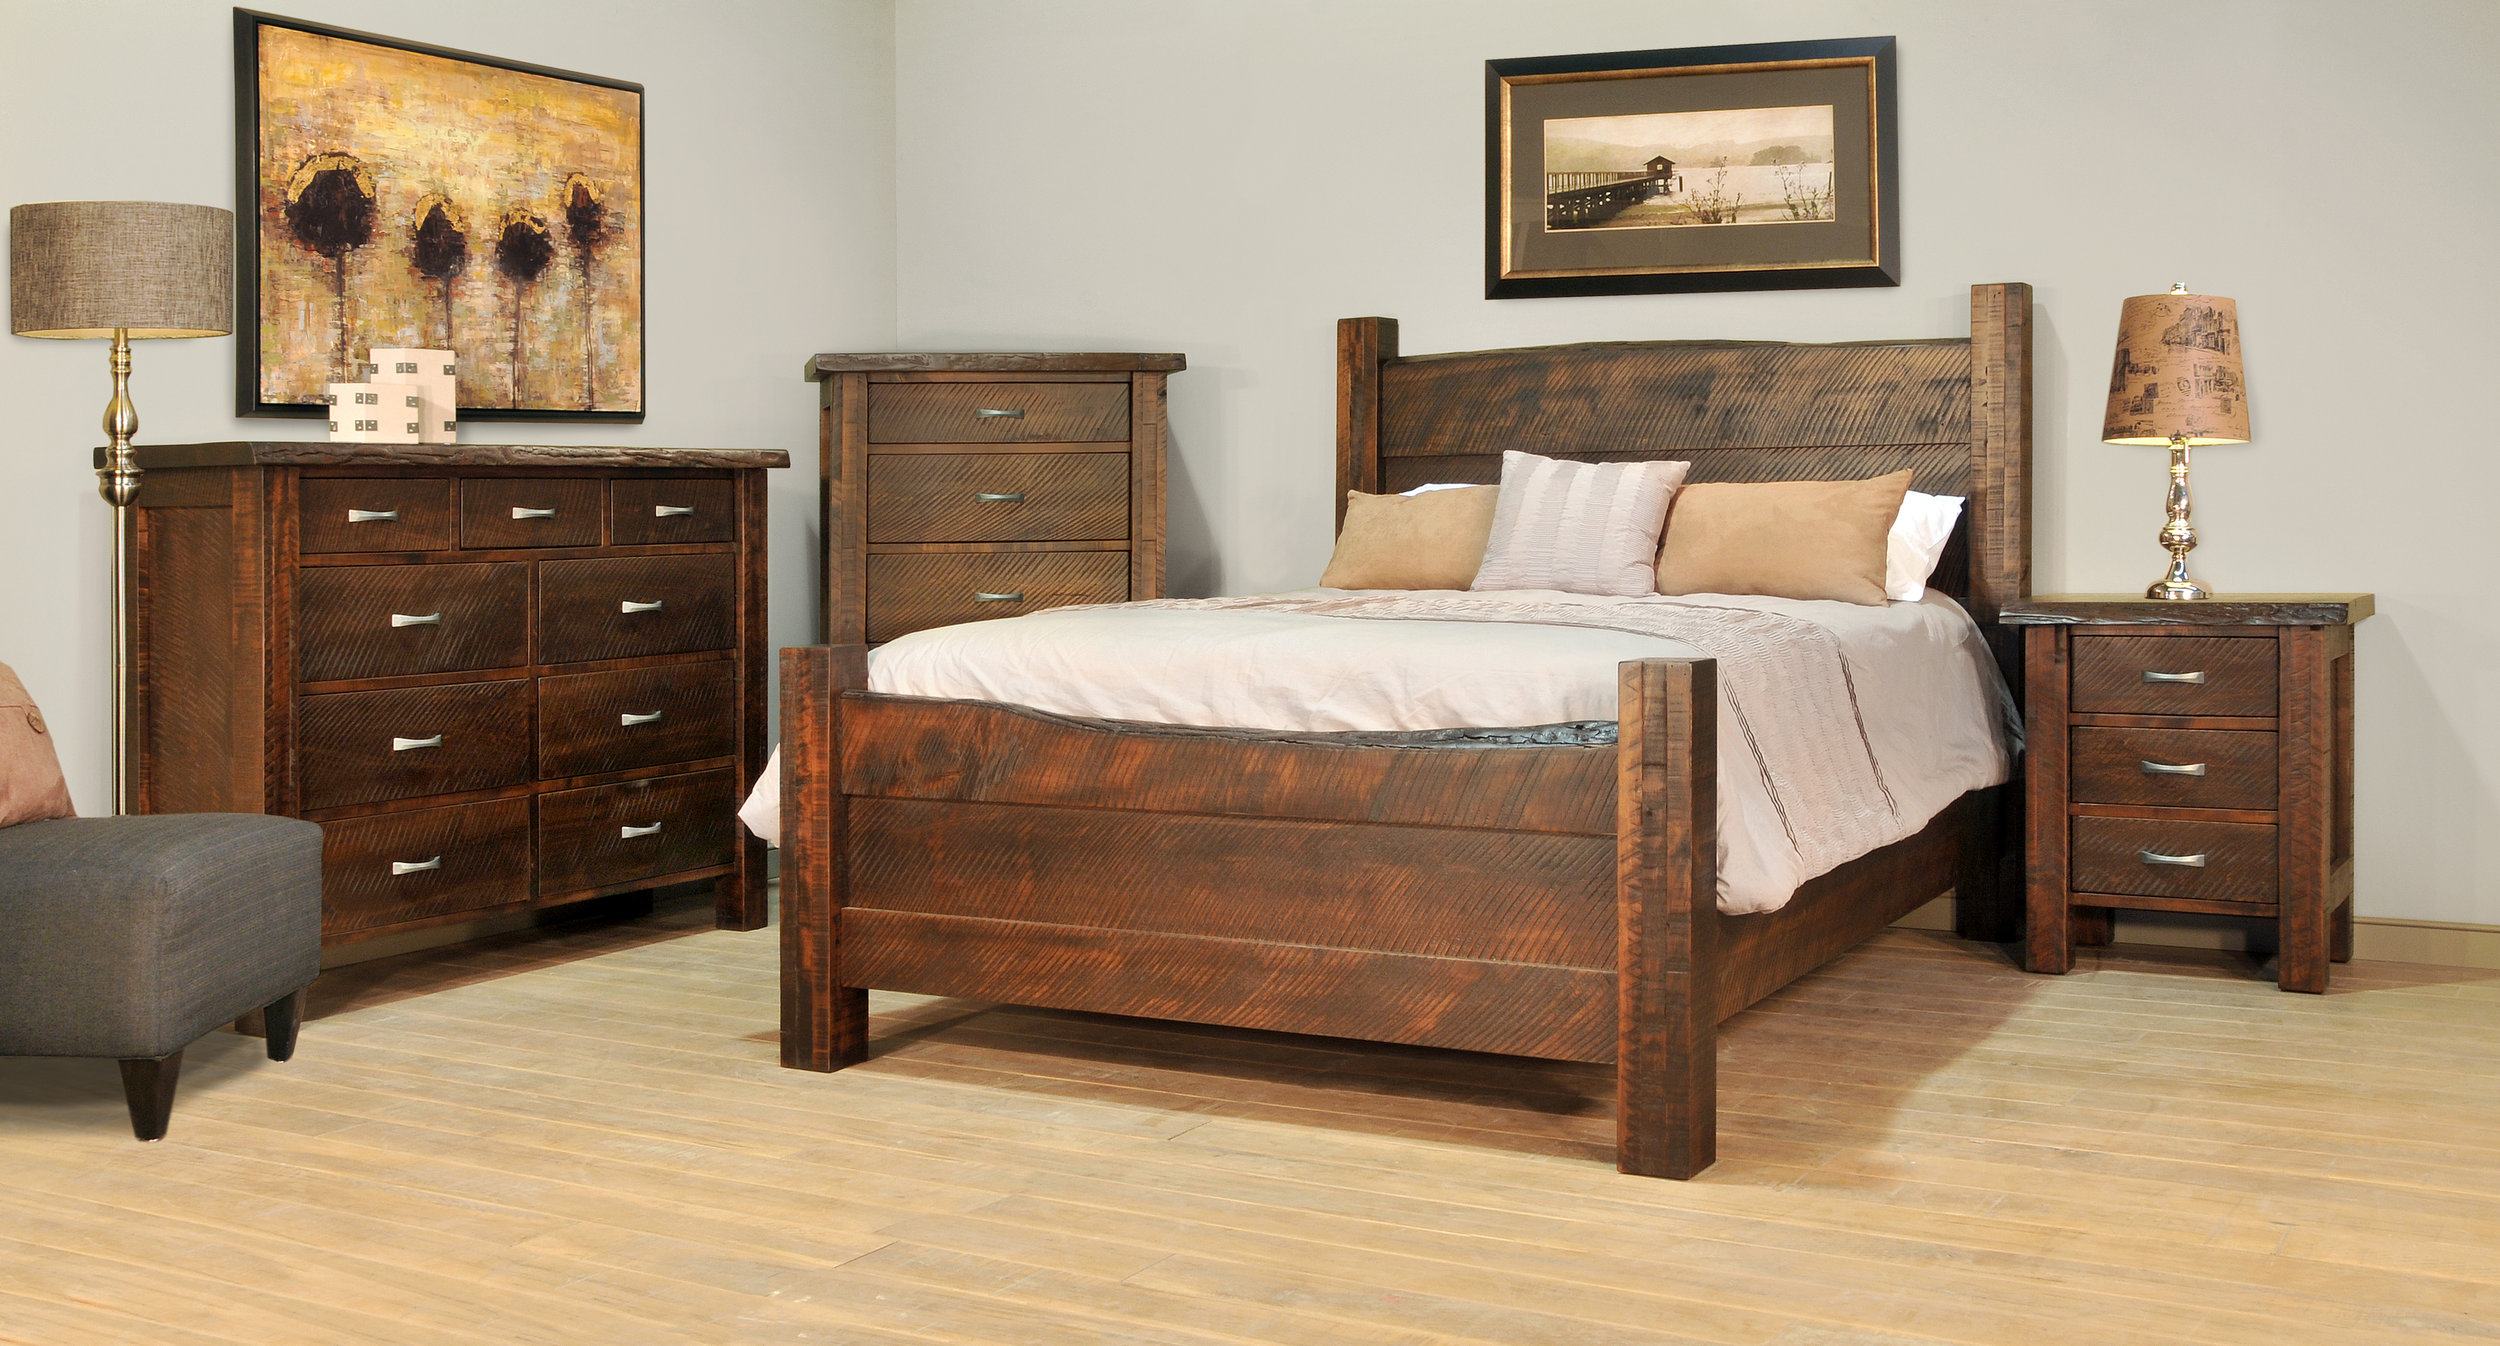 wooden bedsteads for master bedrooms for sale in Struthers, Ohio